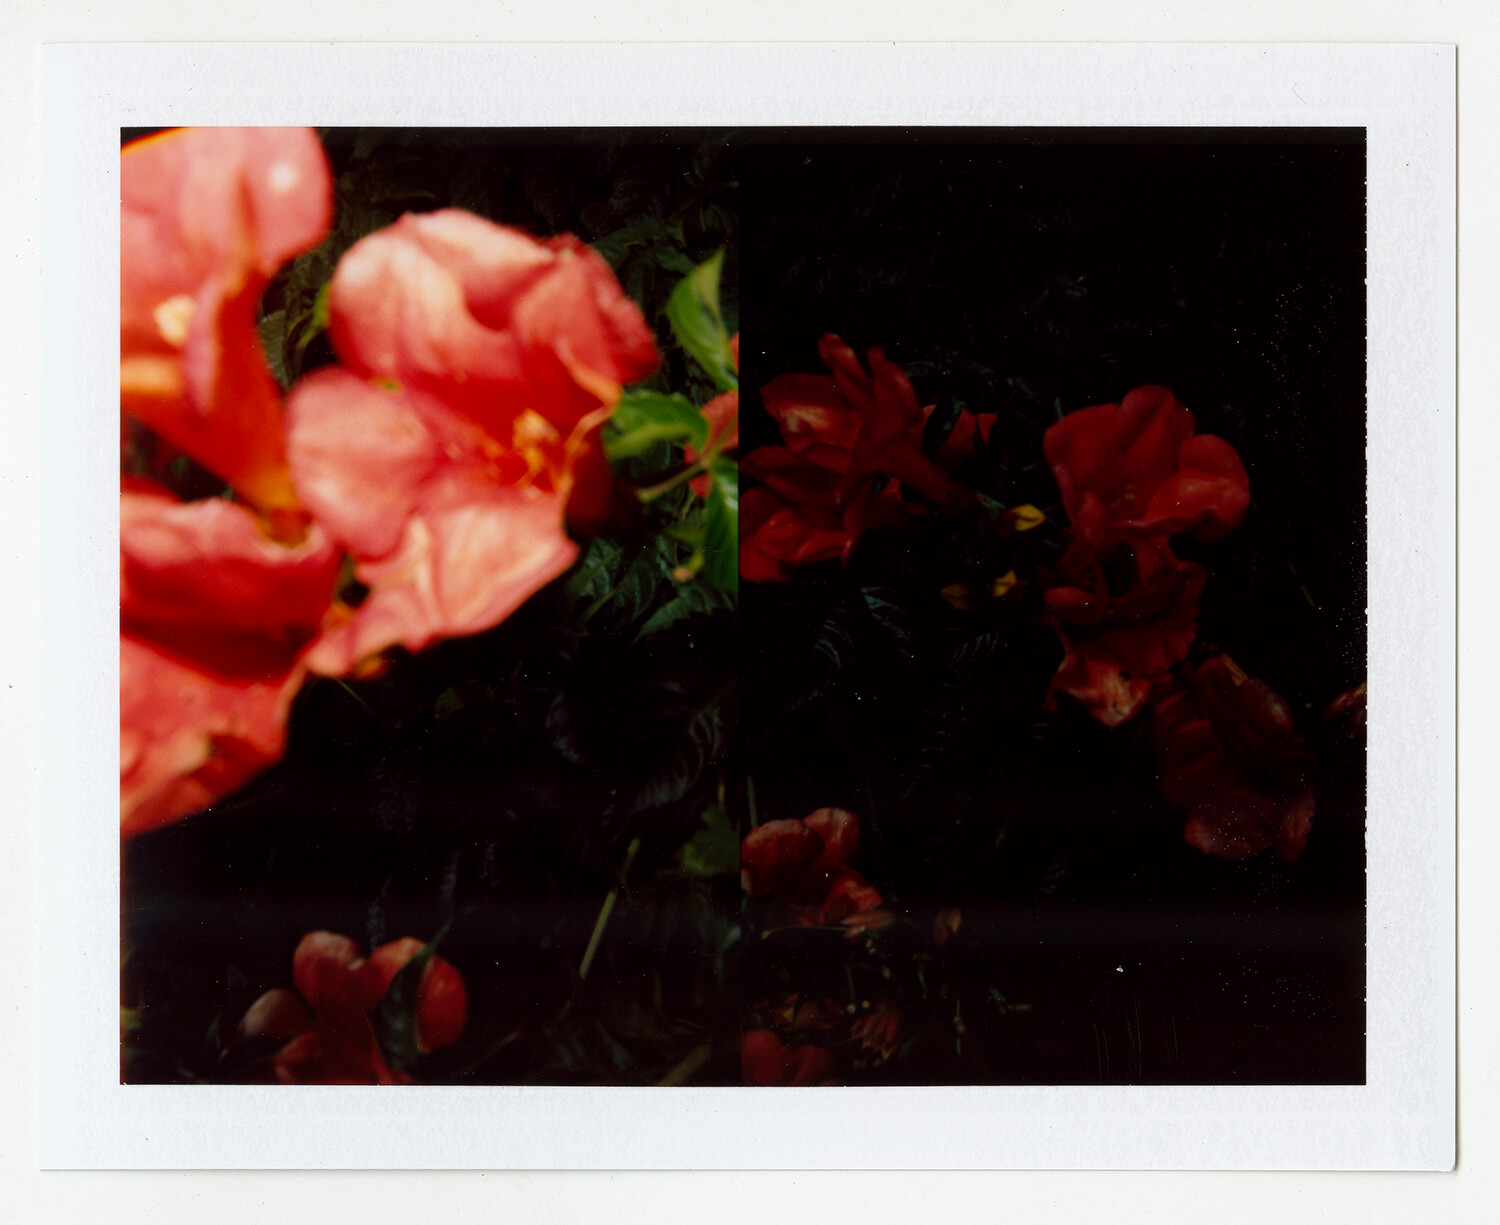 I.D.081, The Polaroid Revolutionary Workers, 2013, Polaroid Picture, 107mm x 86mm